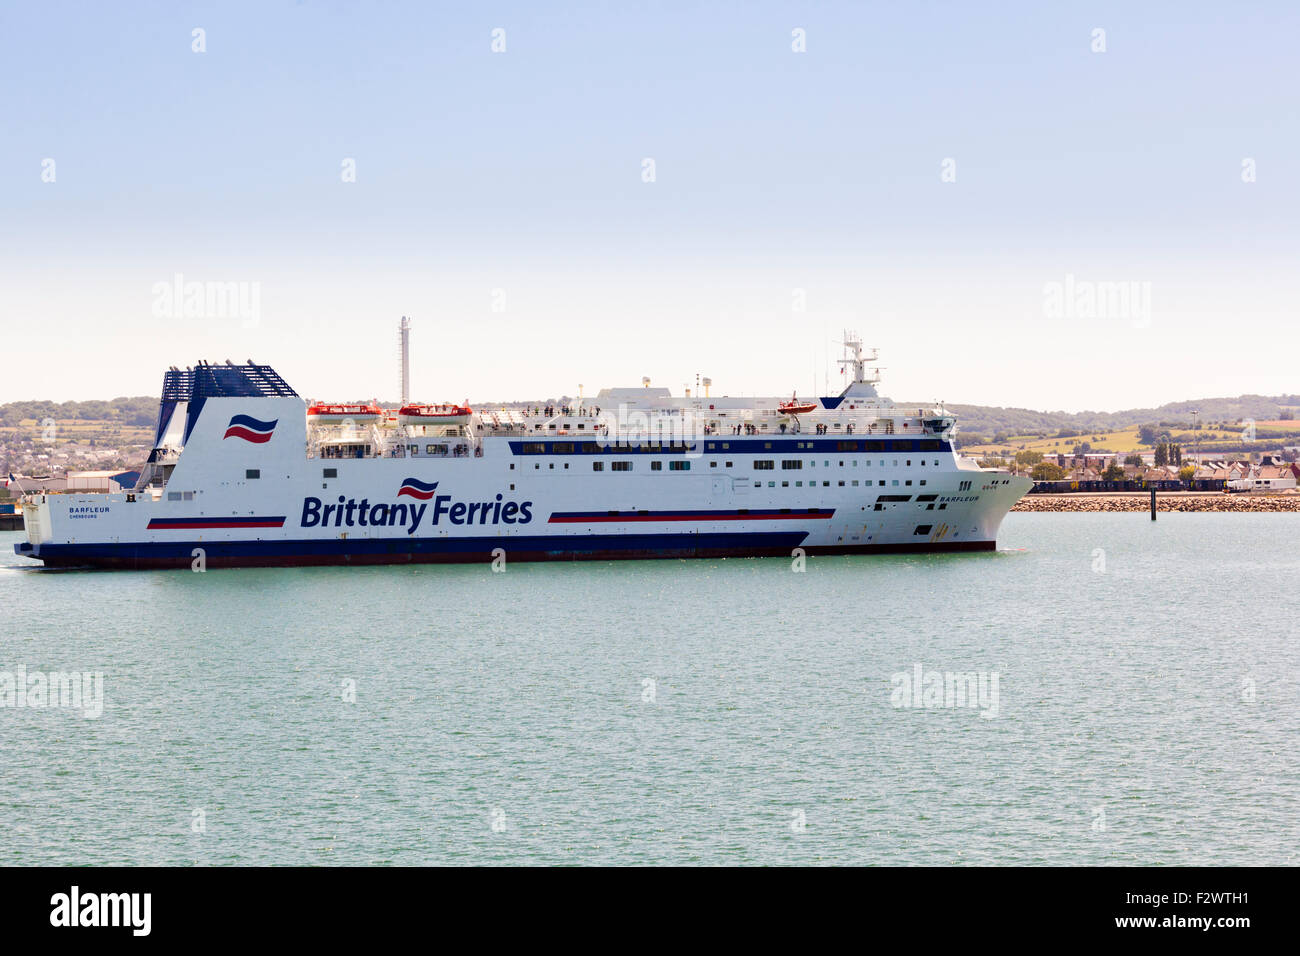 A Brittany Ferries cross channel ferry entering port at Cherbourg, Normandy, France - Stock Image